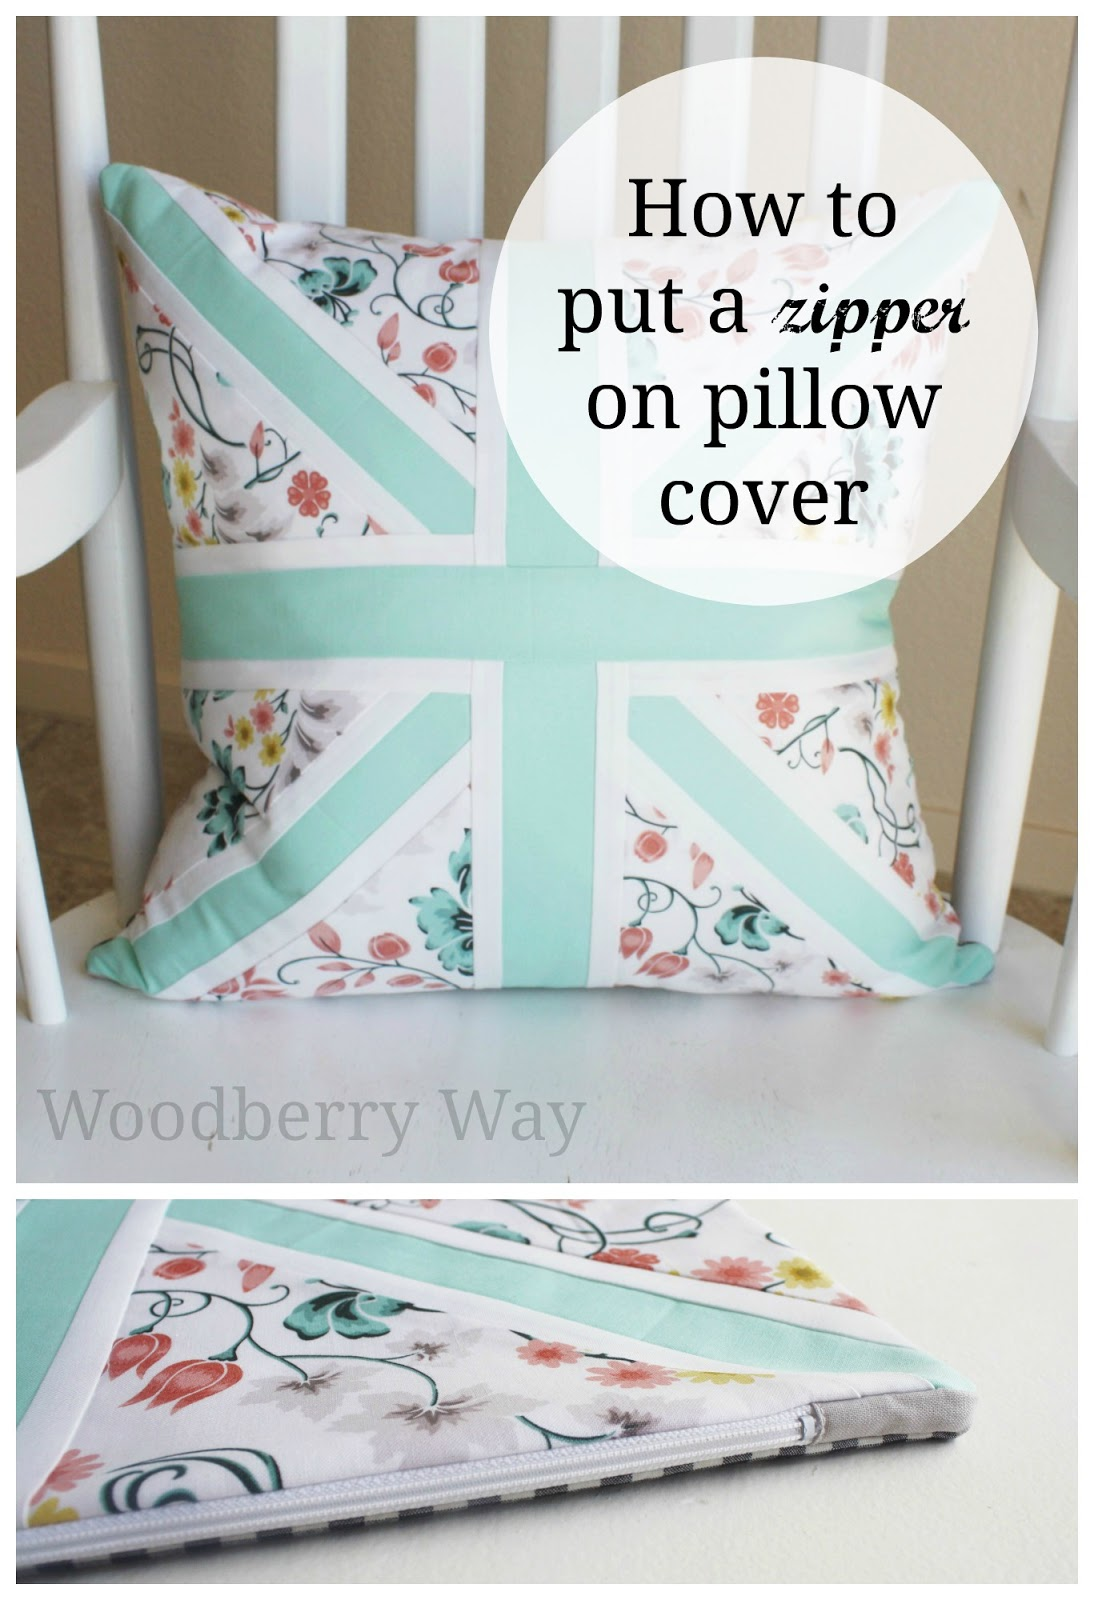 woodberry way pillow with a zipper tutorial